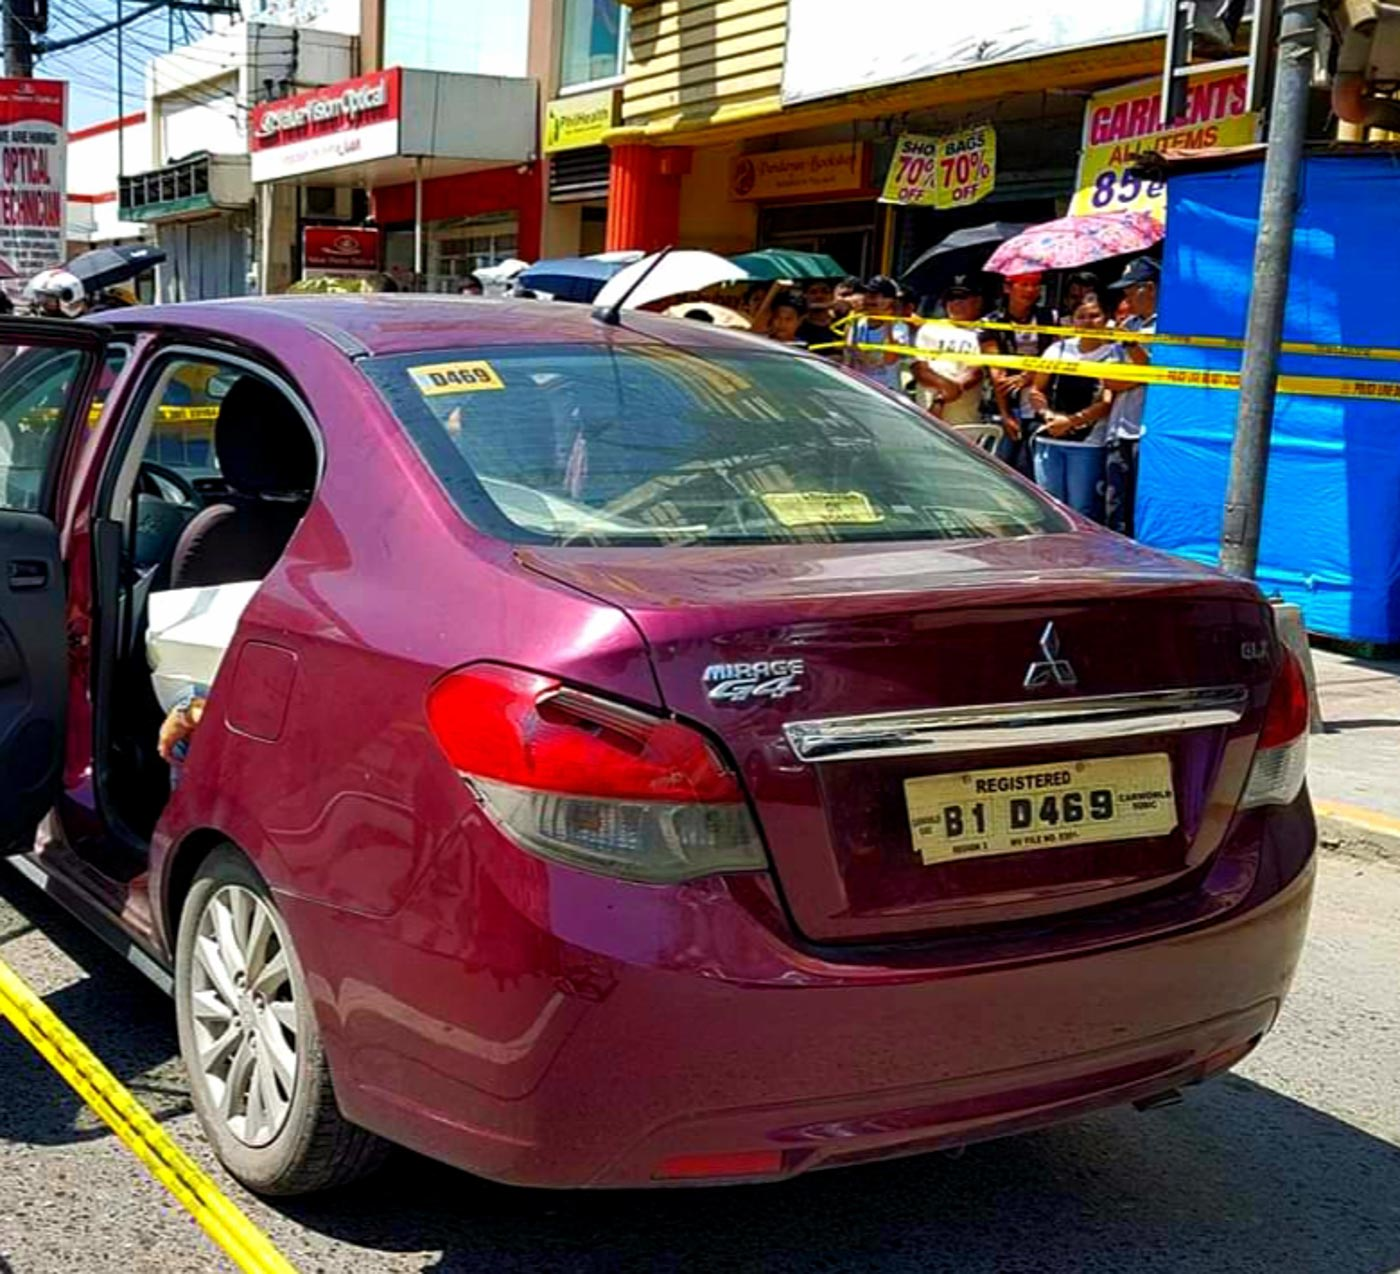 SURVIVOR. A one-year-old child survives the attack inside the car. Photo courtesy of Olongapo City police